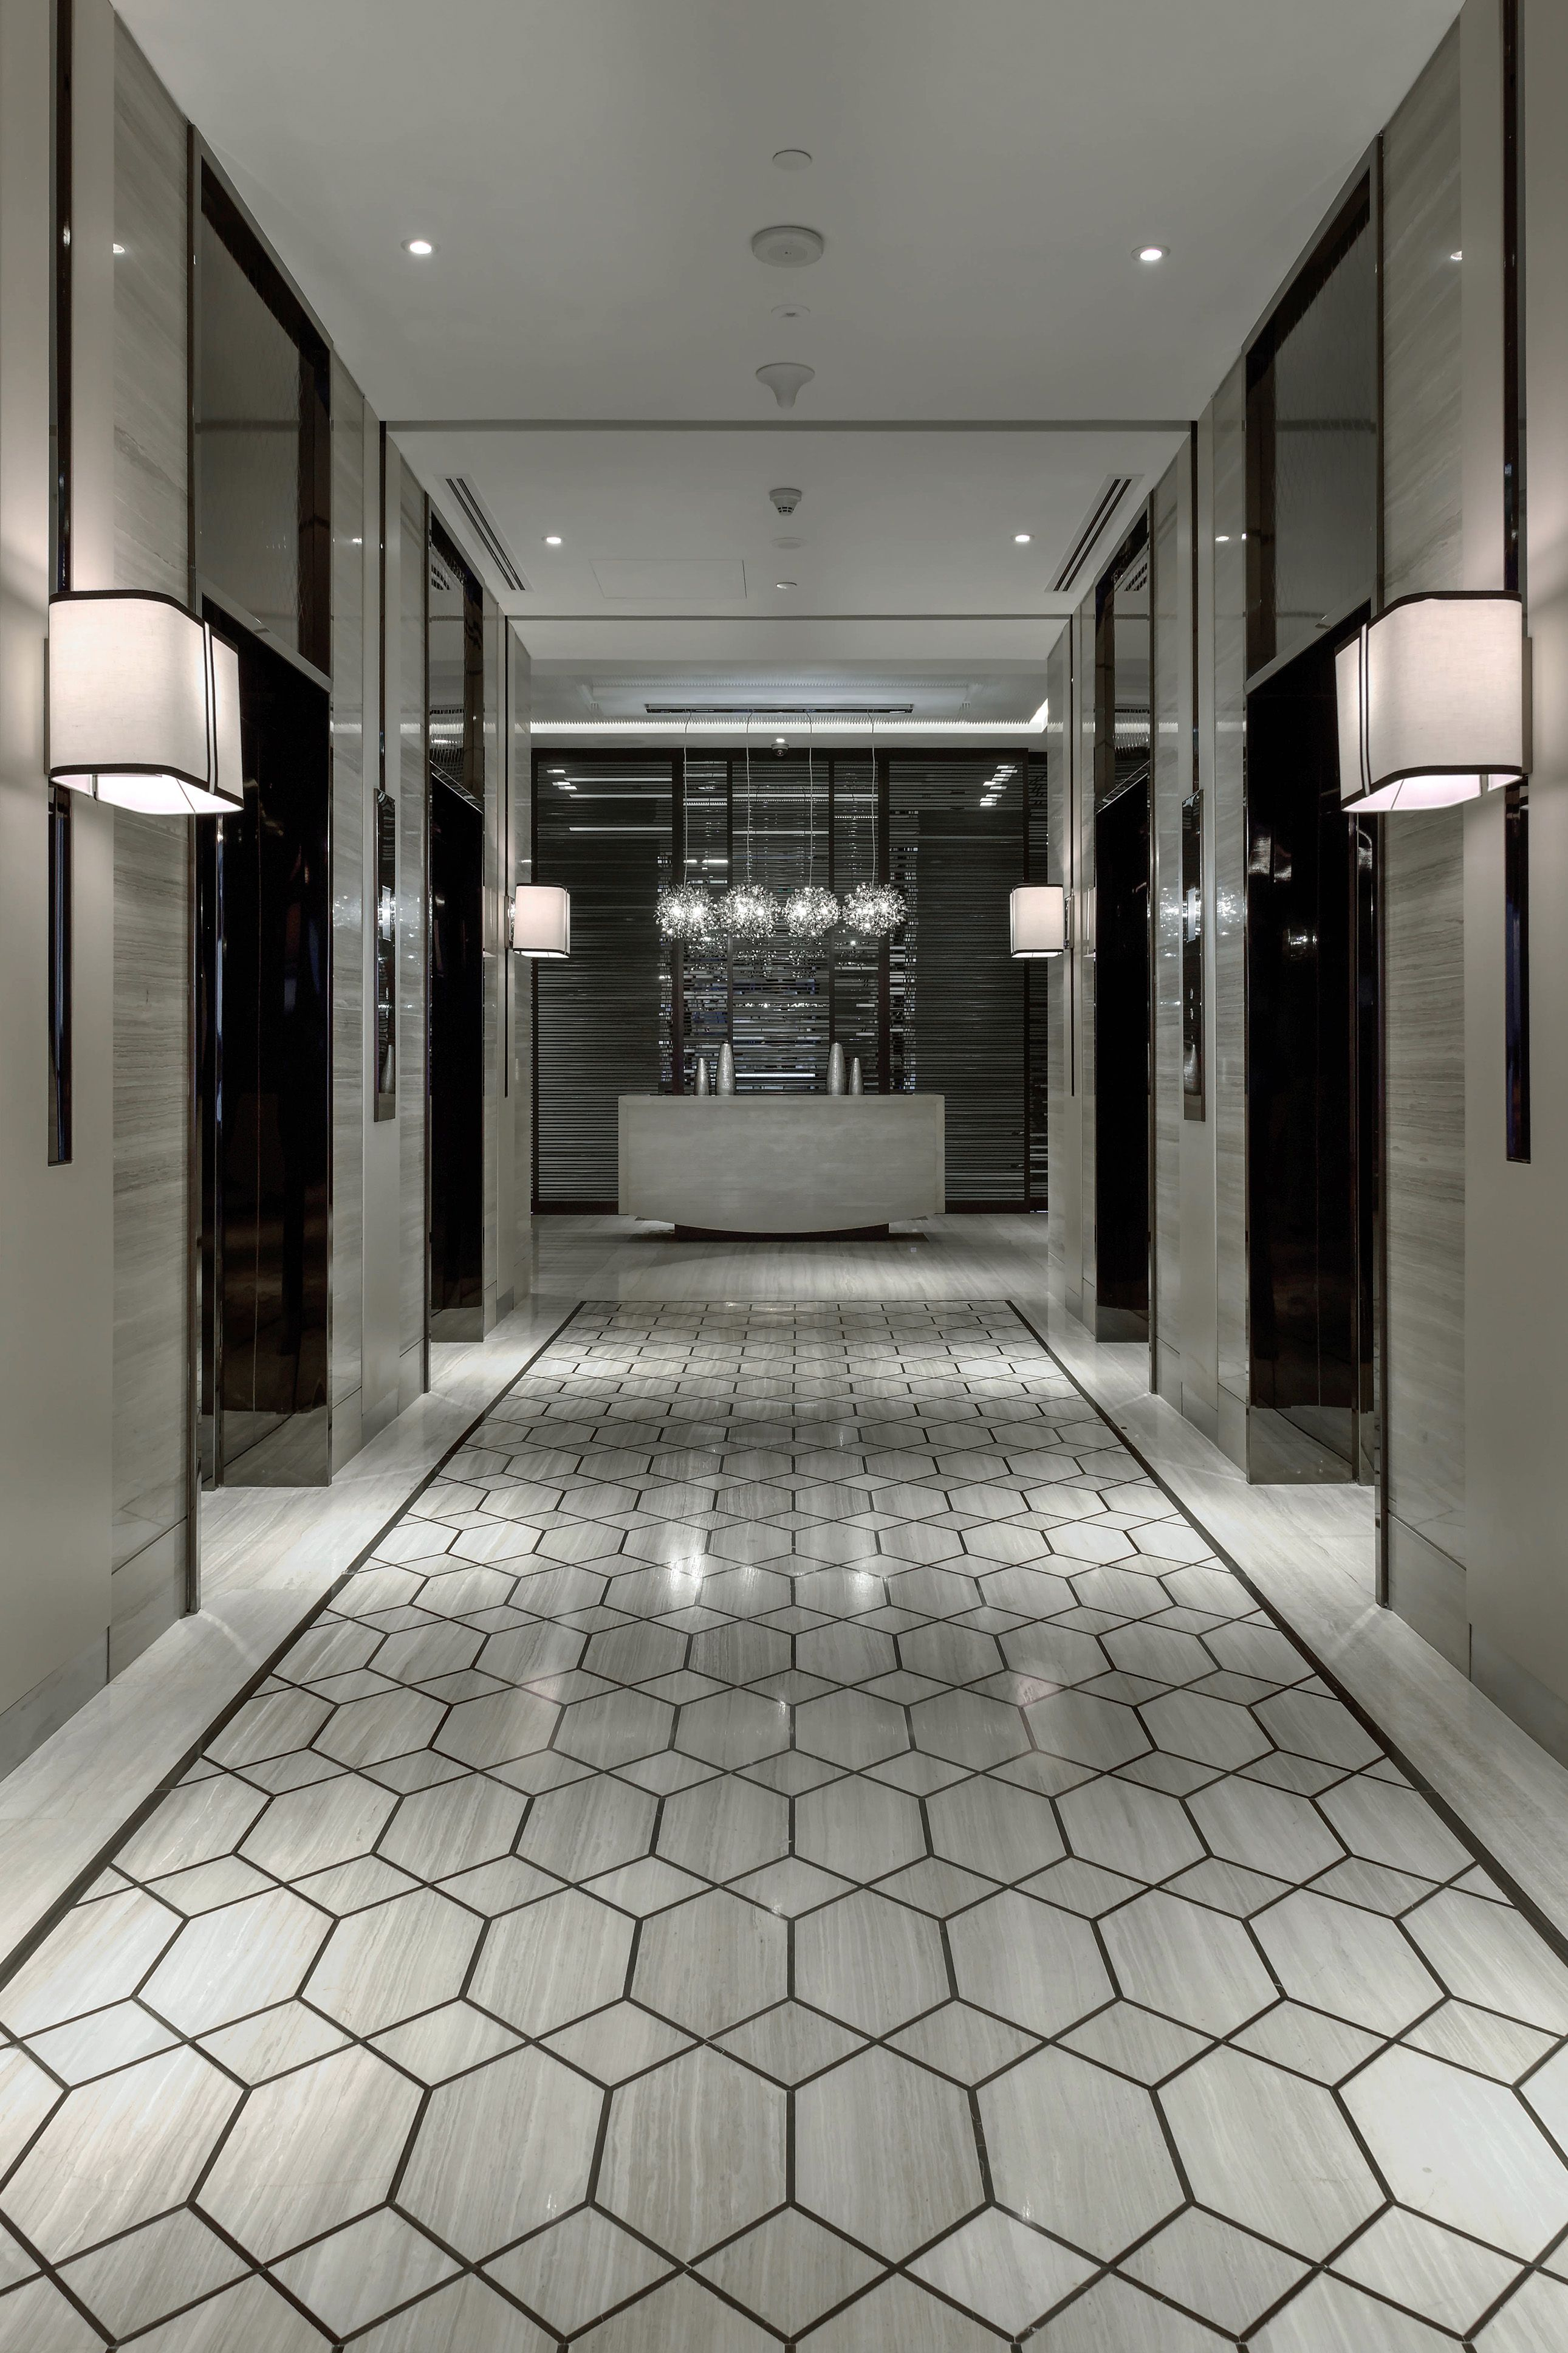 Steinberger business bay hotel dubai by lw design interior exterior architecture lobby also open  groan as started walking around was literally  caged rh ar pinterest